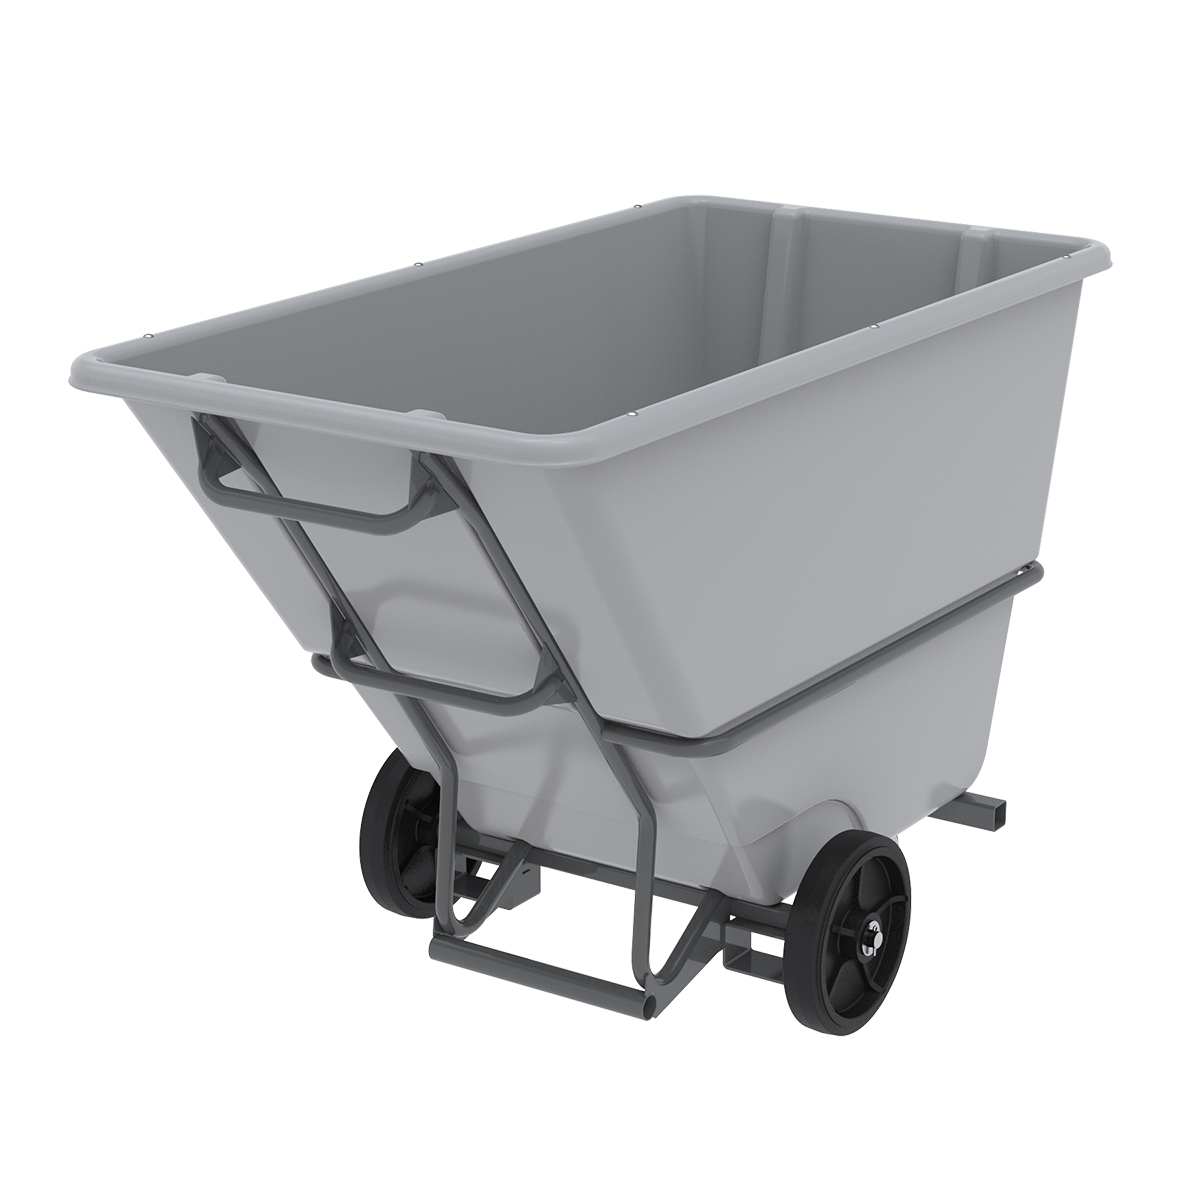 Akro-Tilt Truck w/ Fork Channels Super Heavy-Duty 200 Gal, 33 x 66 x 42, Gray (77610FGREY).  This item sold in carton quantities of 1.